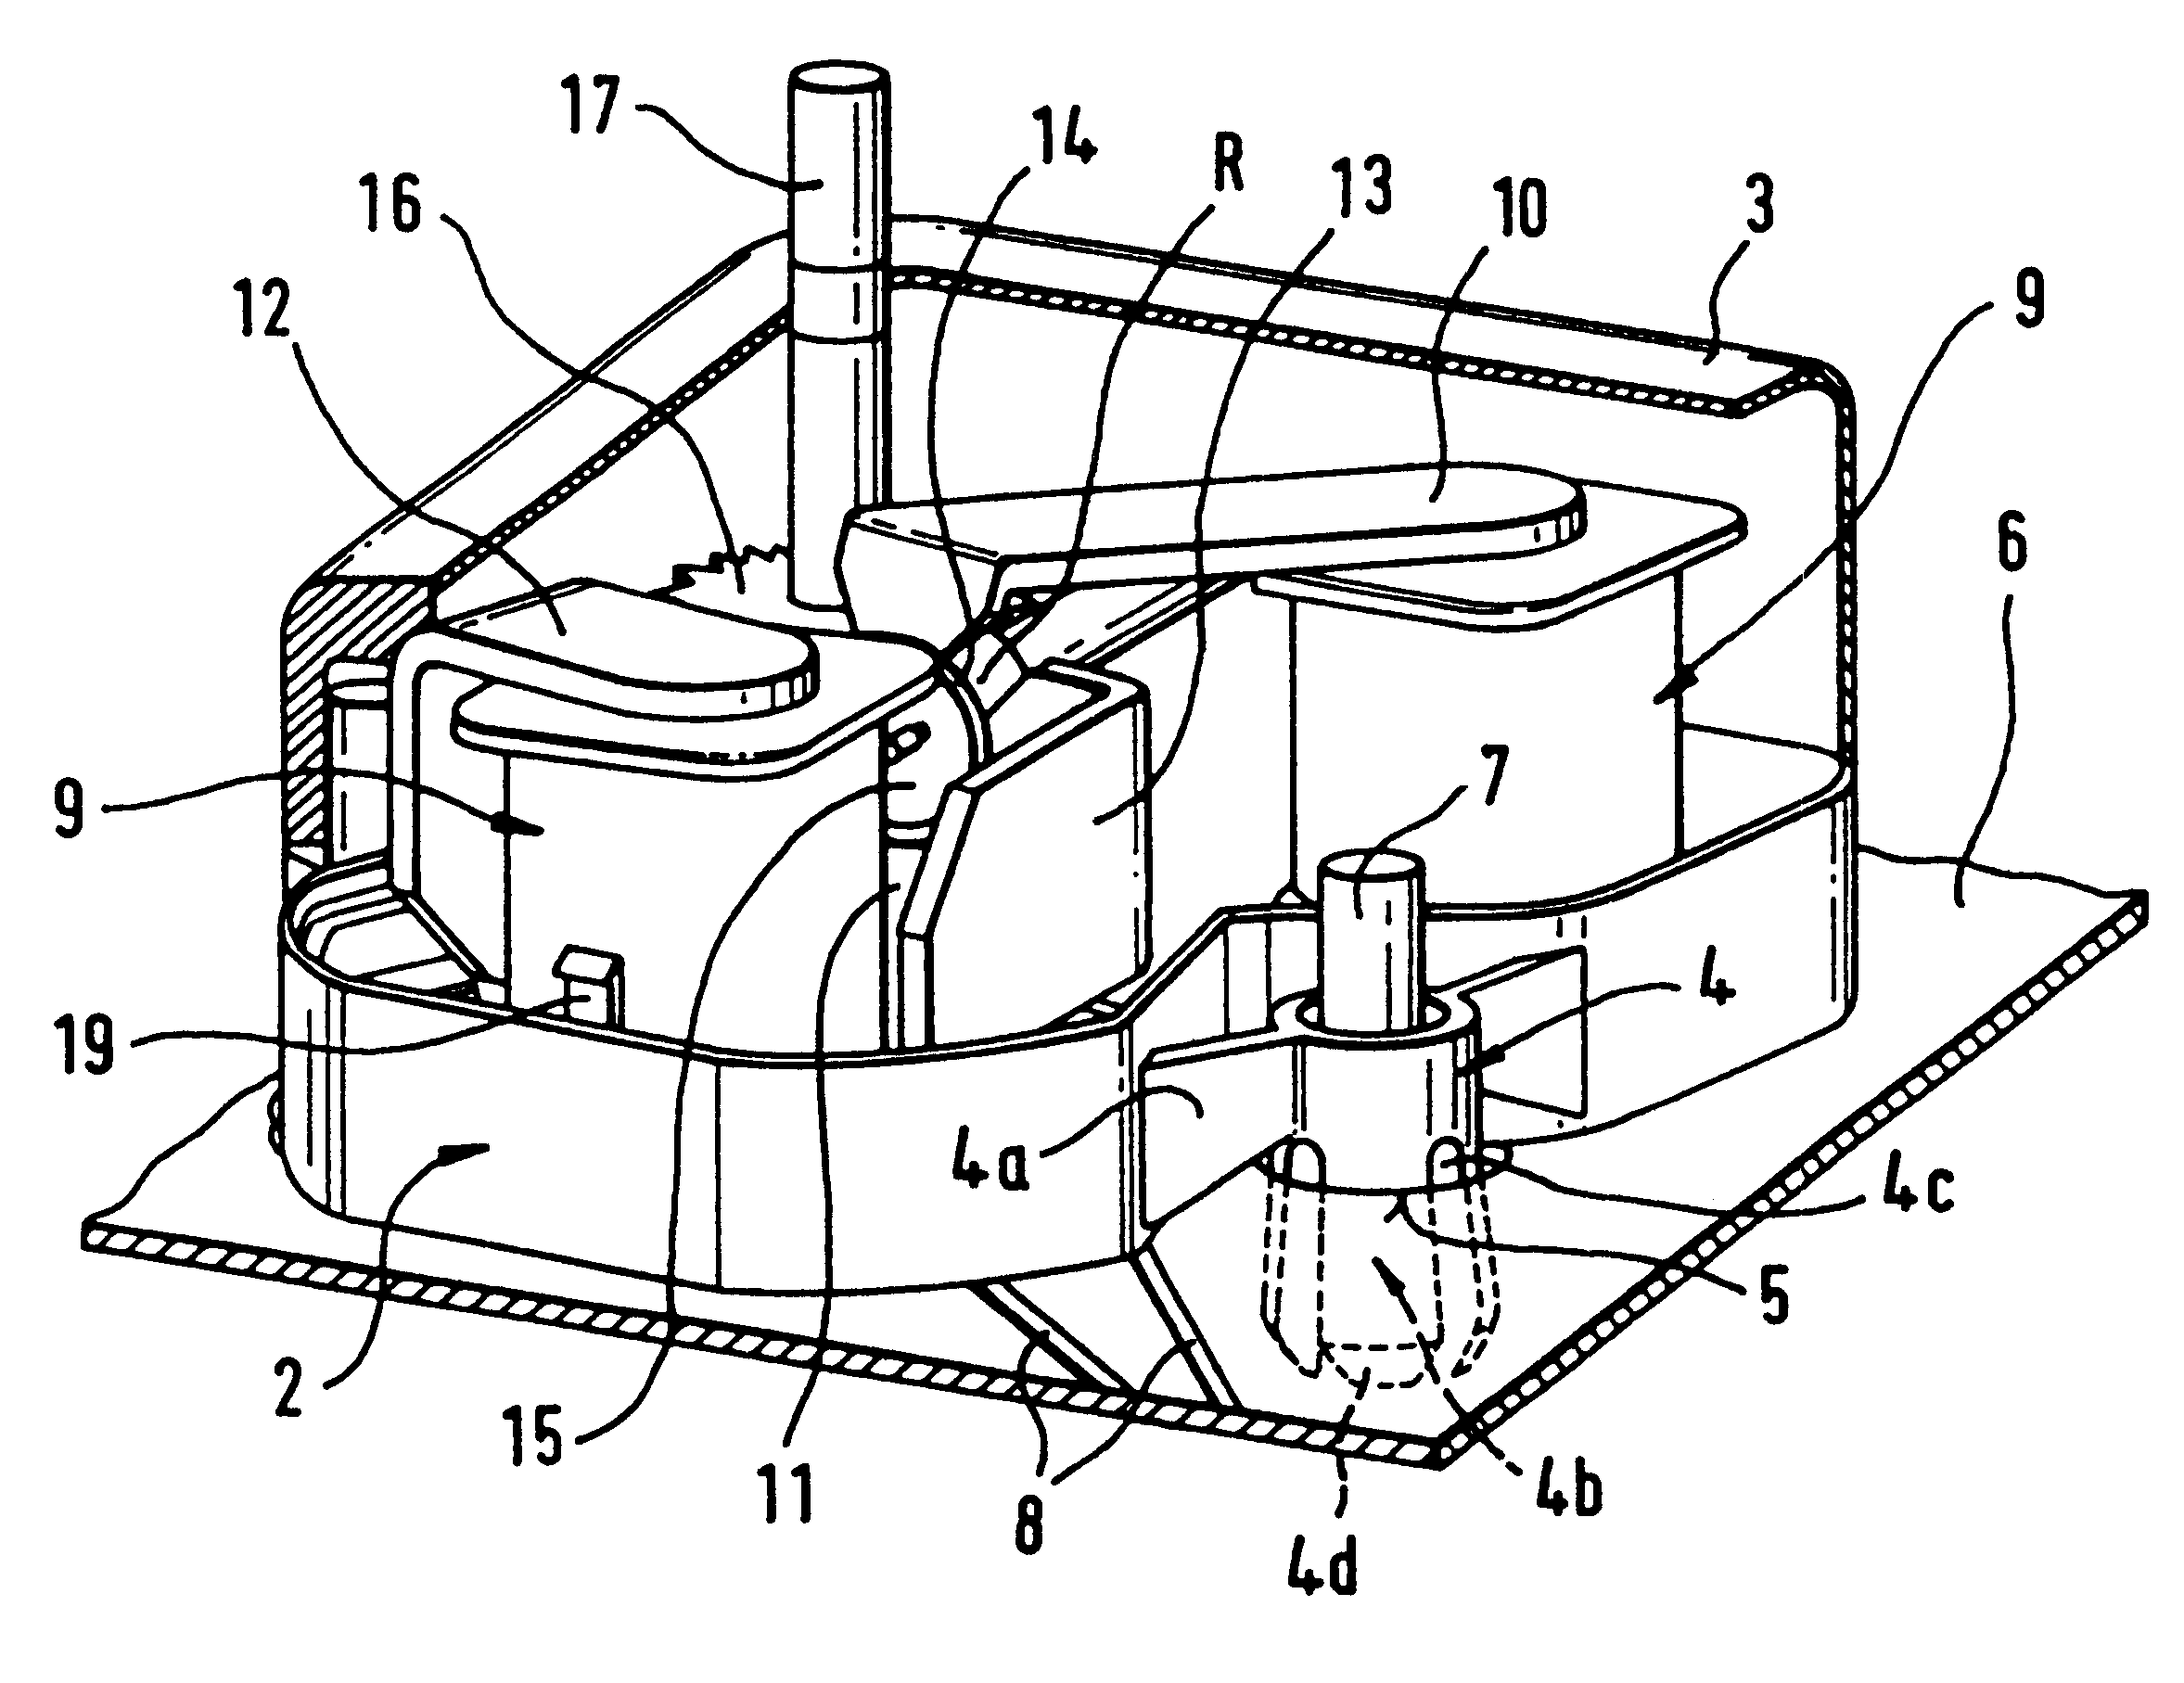 patent us6534888 - electric motor intended to be fixed to a printed circuit board